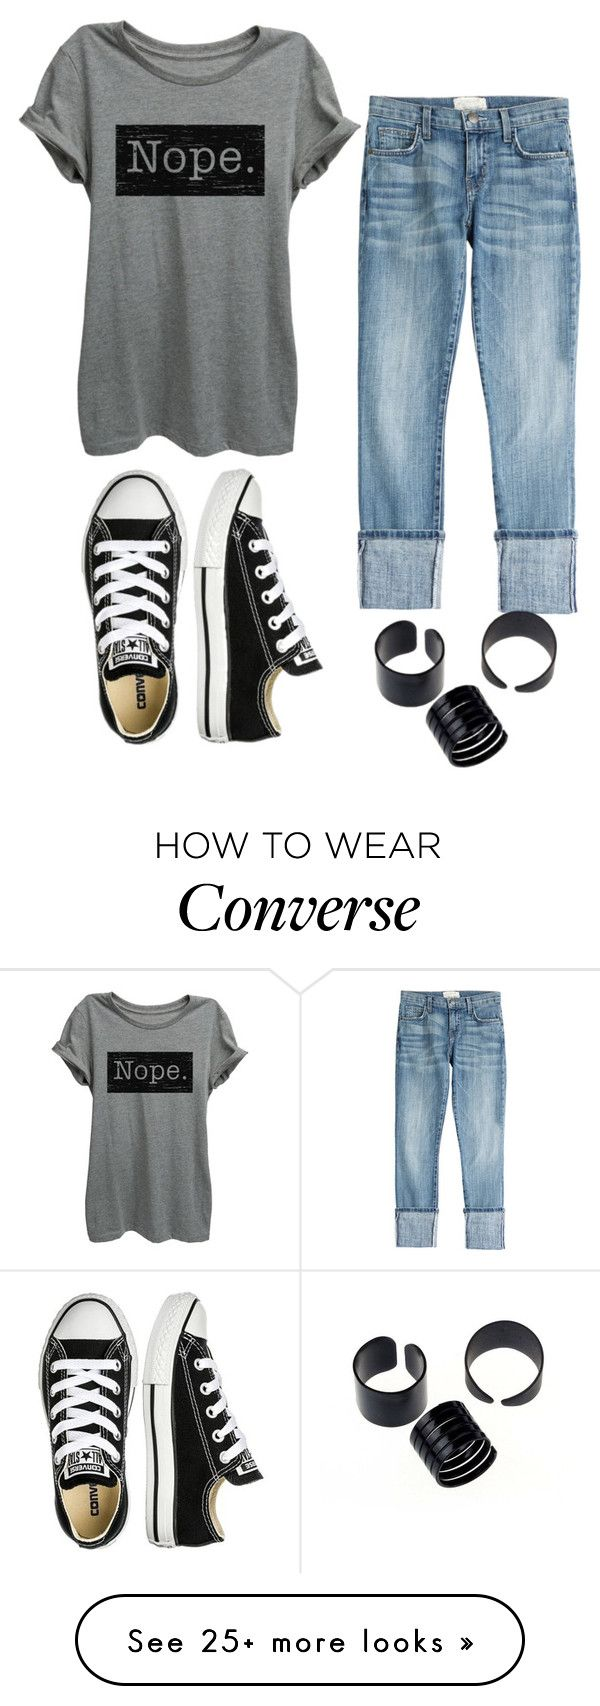 """Untitled #780"" by zeniboo on Polyvore featuring Current/Elliott and Converse"